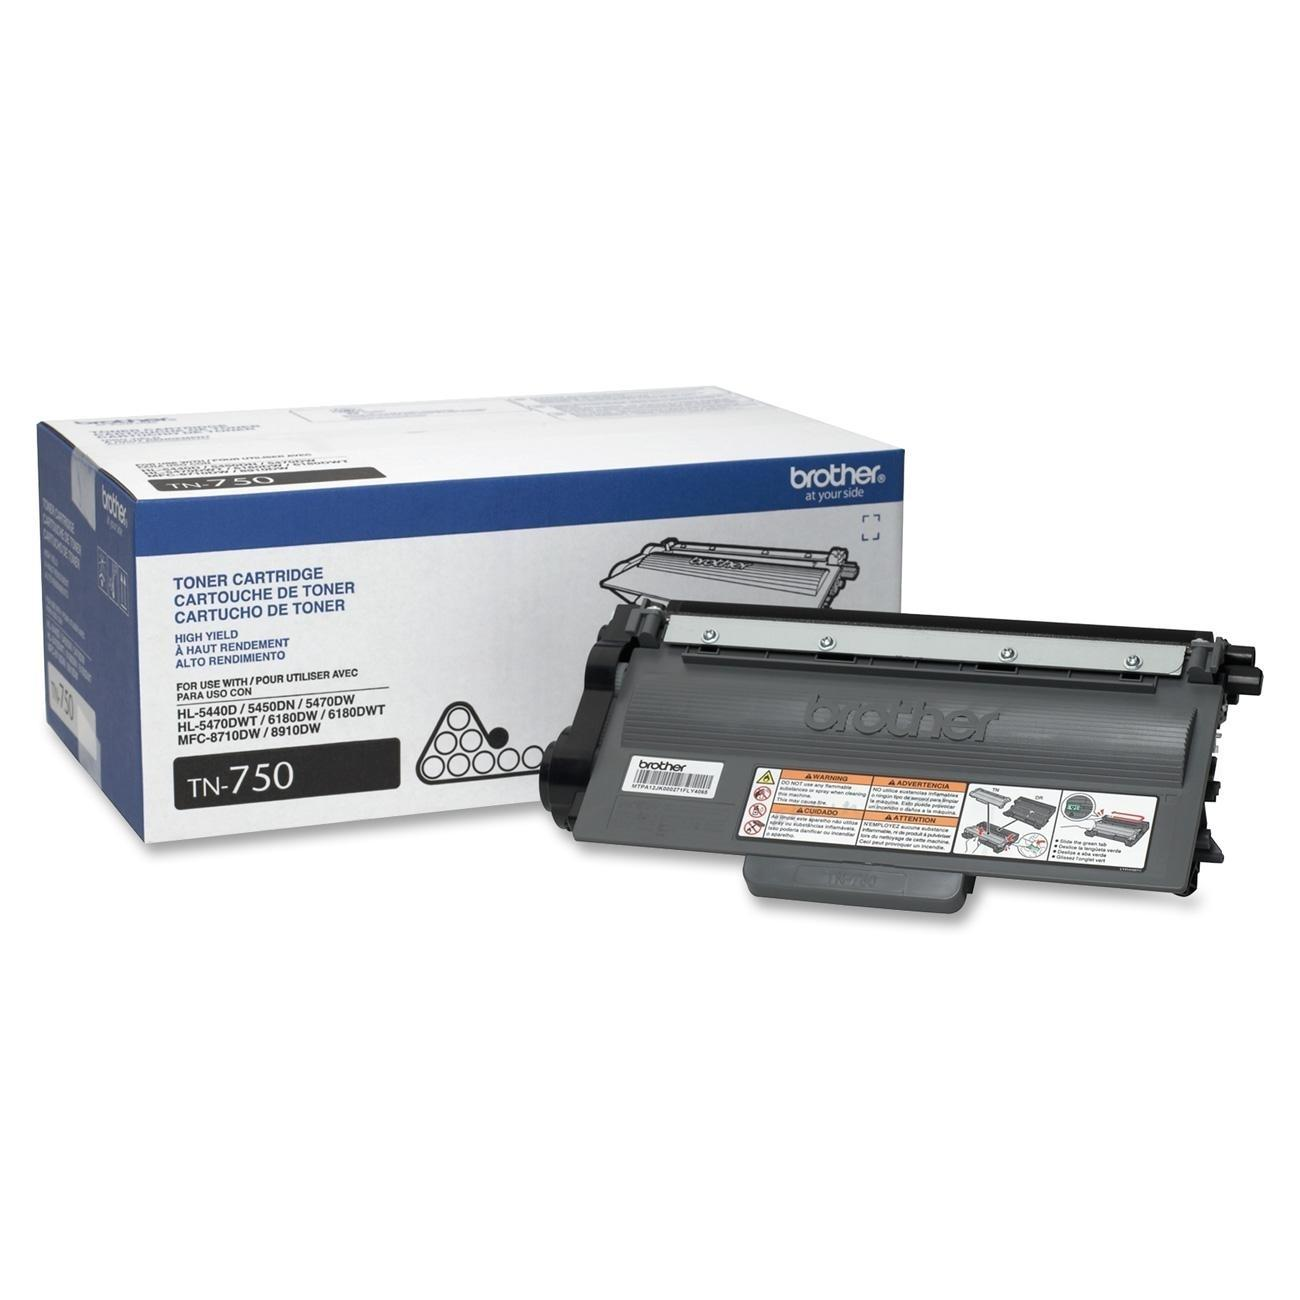 Brother TN750 OEM Black Toner Cartridge